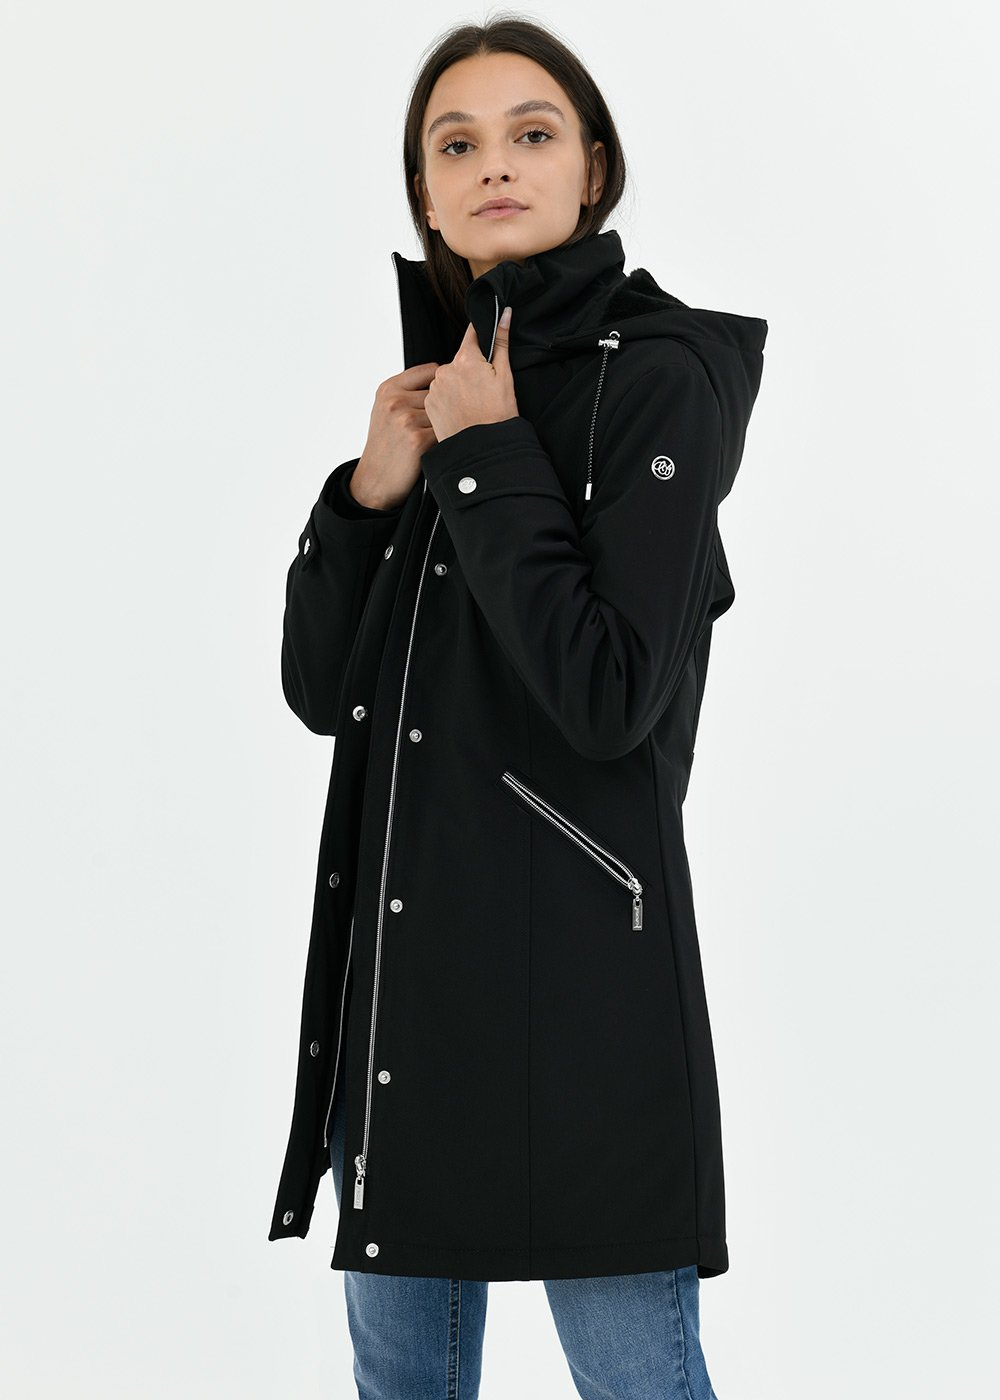 Peter down jacket in technical fabric - Black - Woman